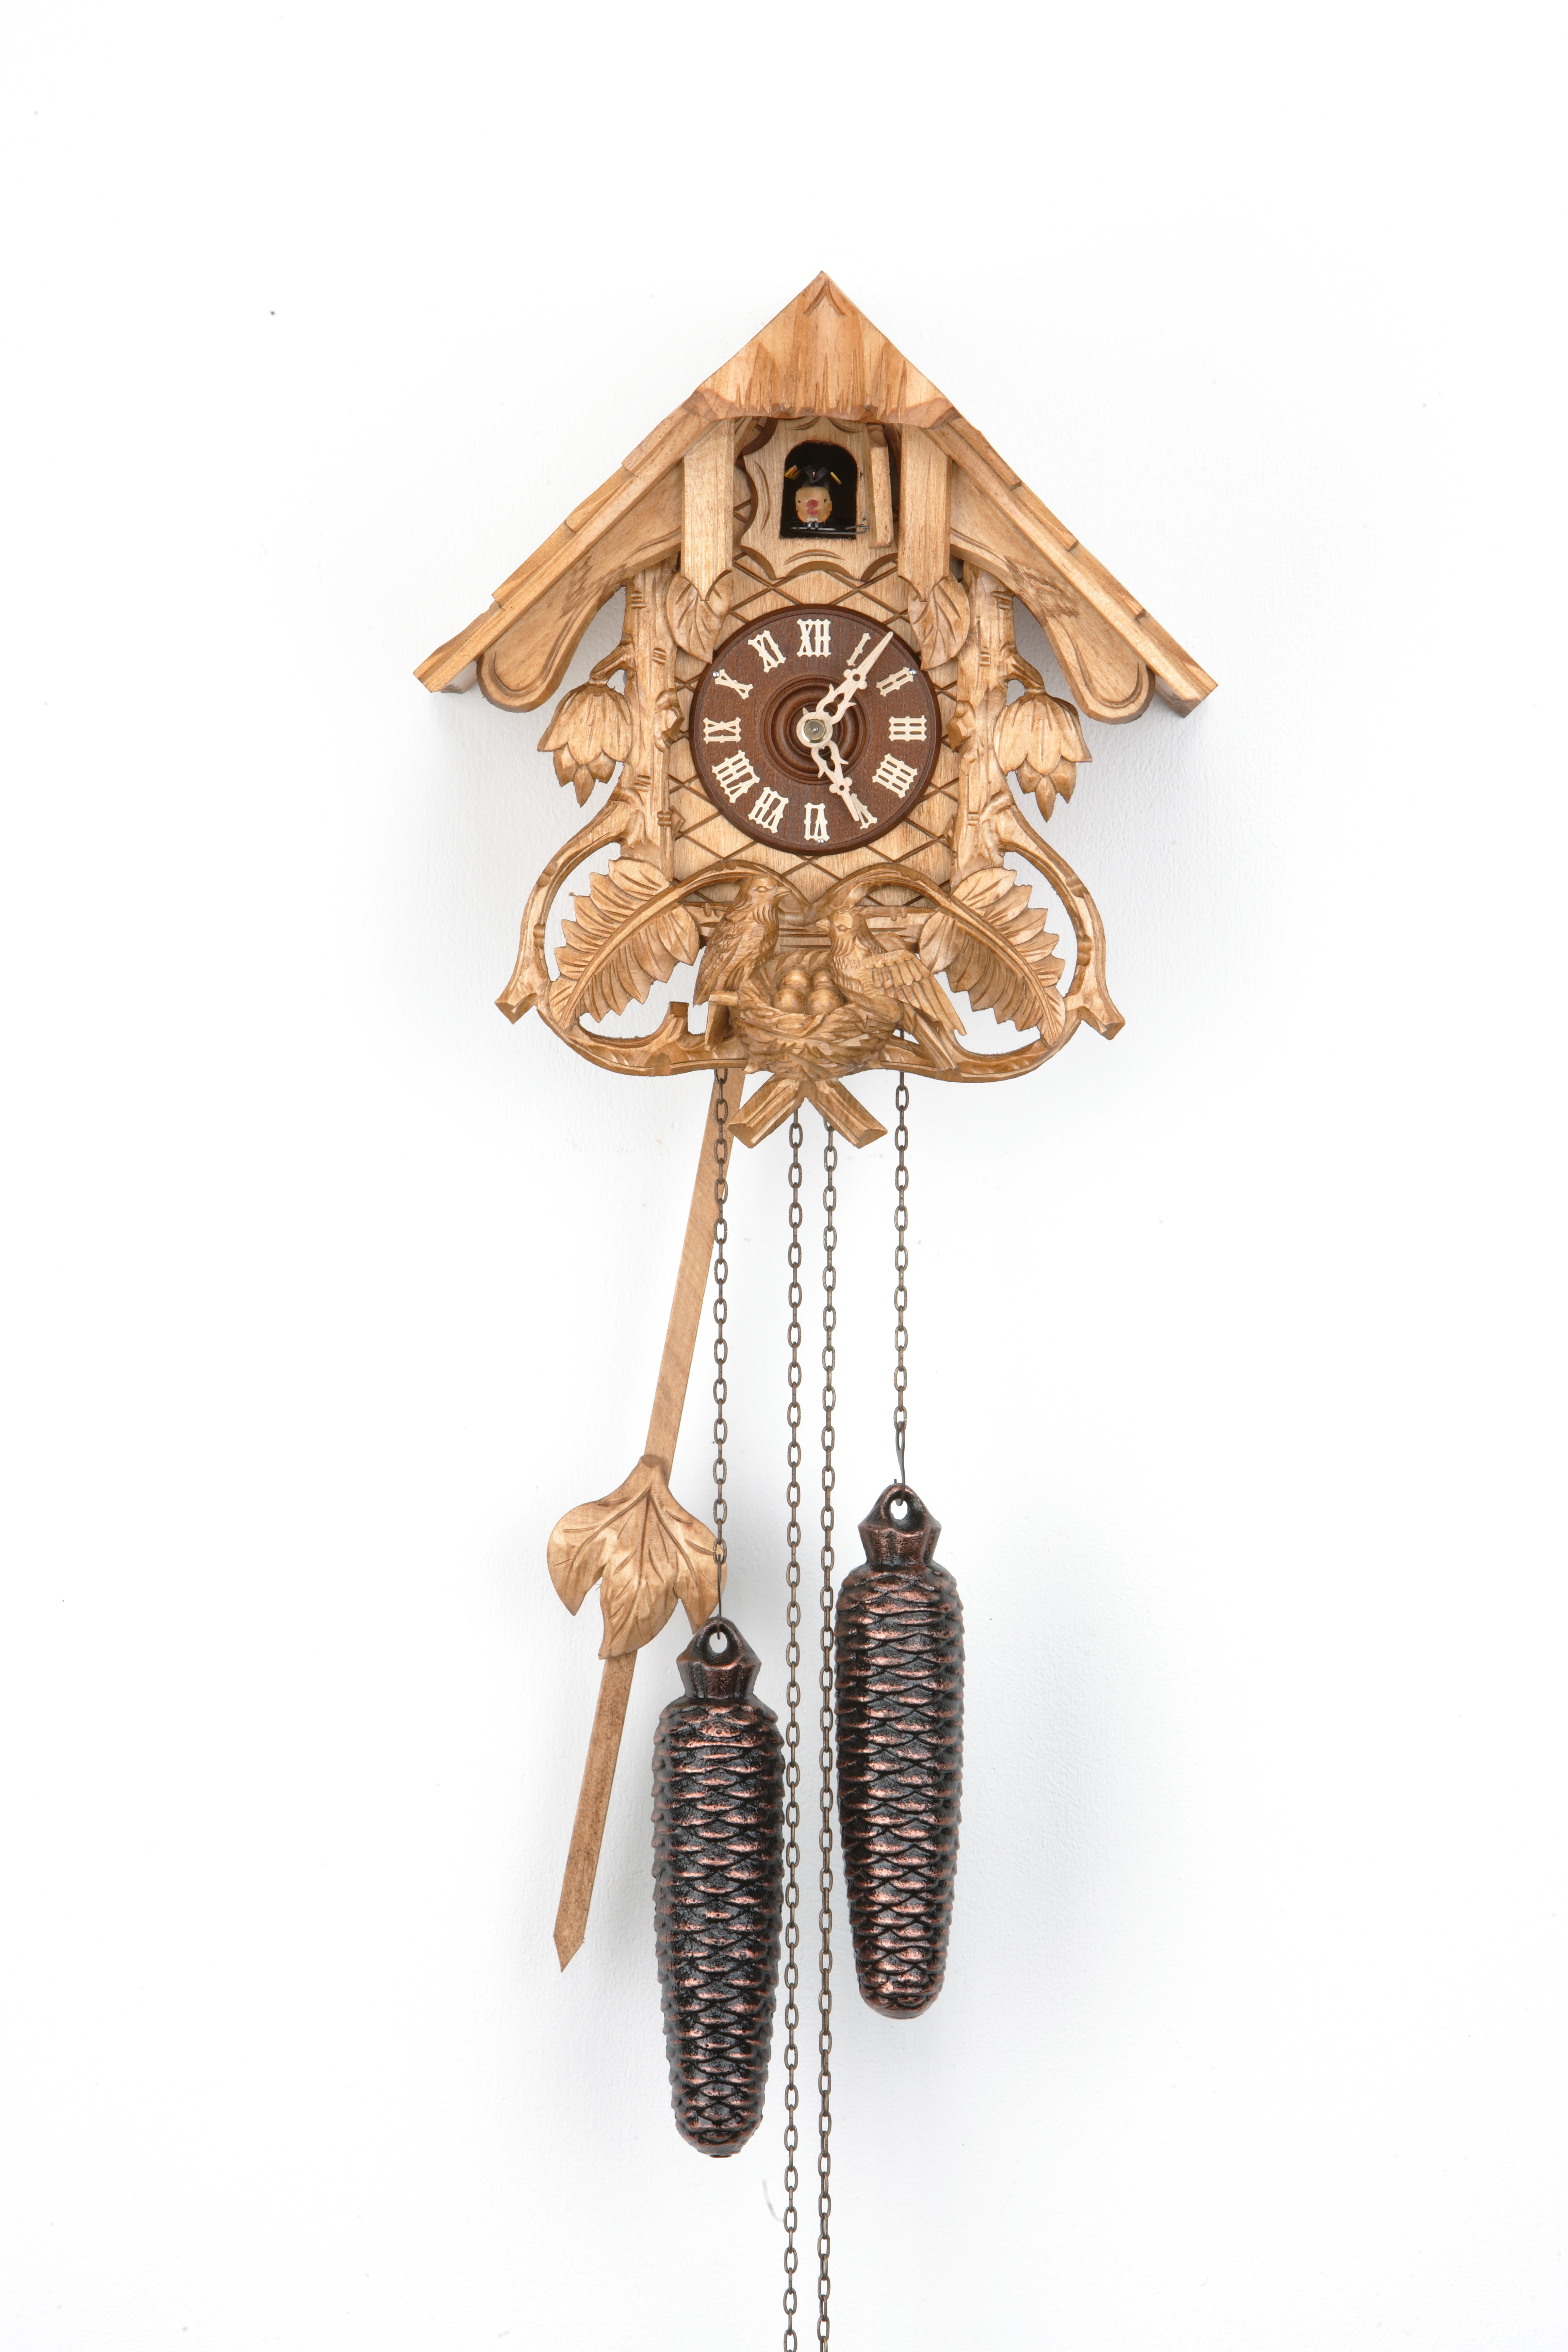 8 Days Cuckoo Clock Black Forest House with fern leaves and bird family